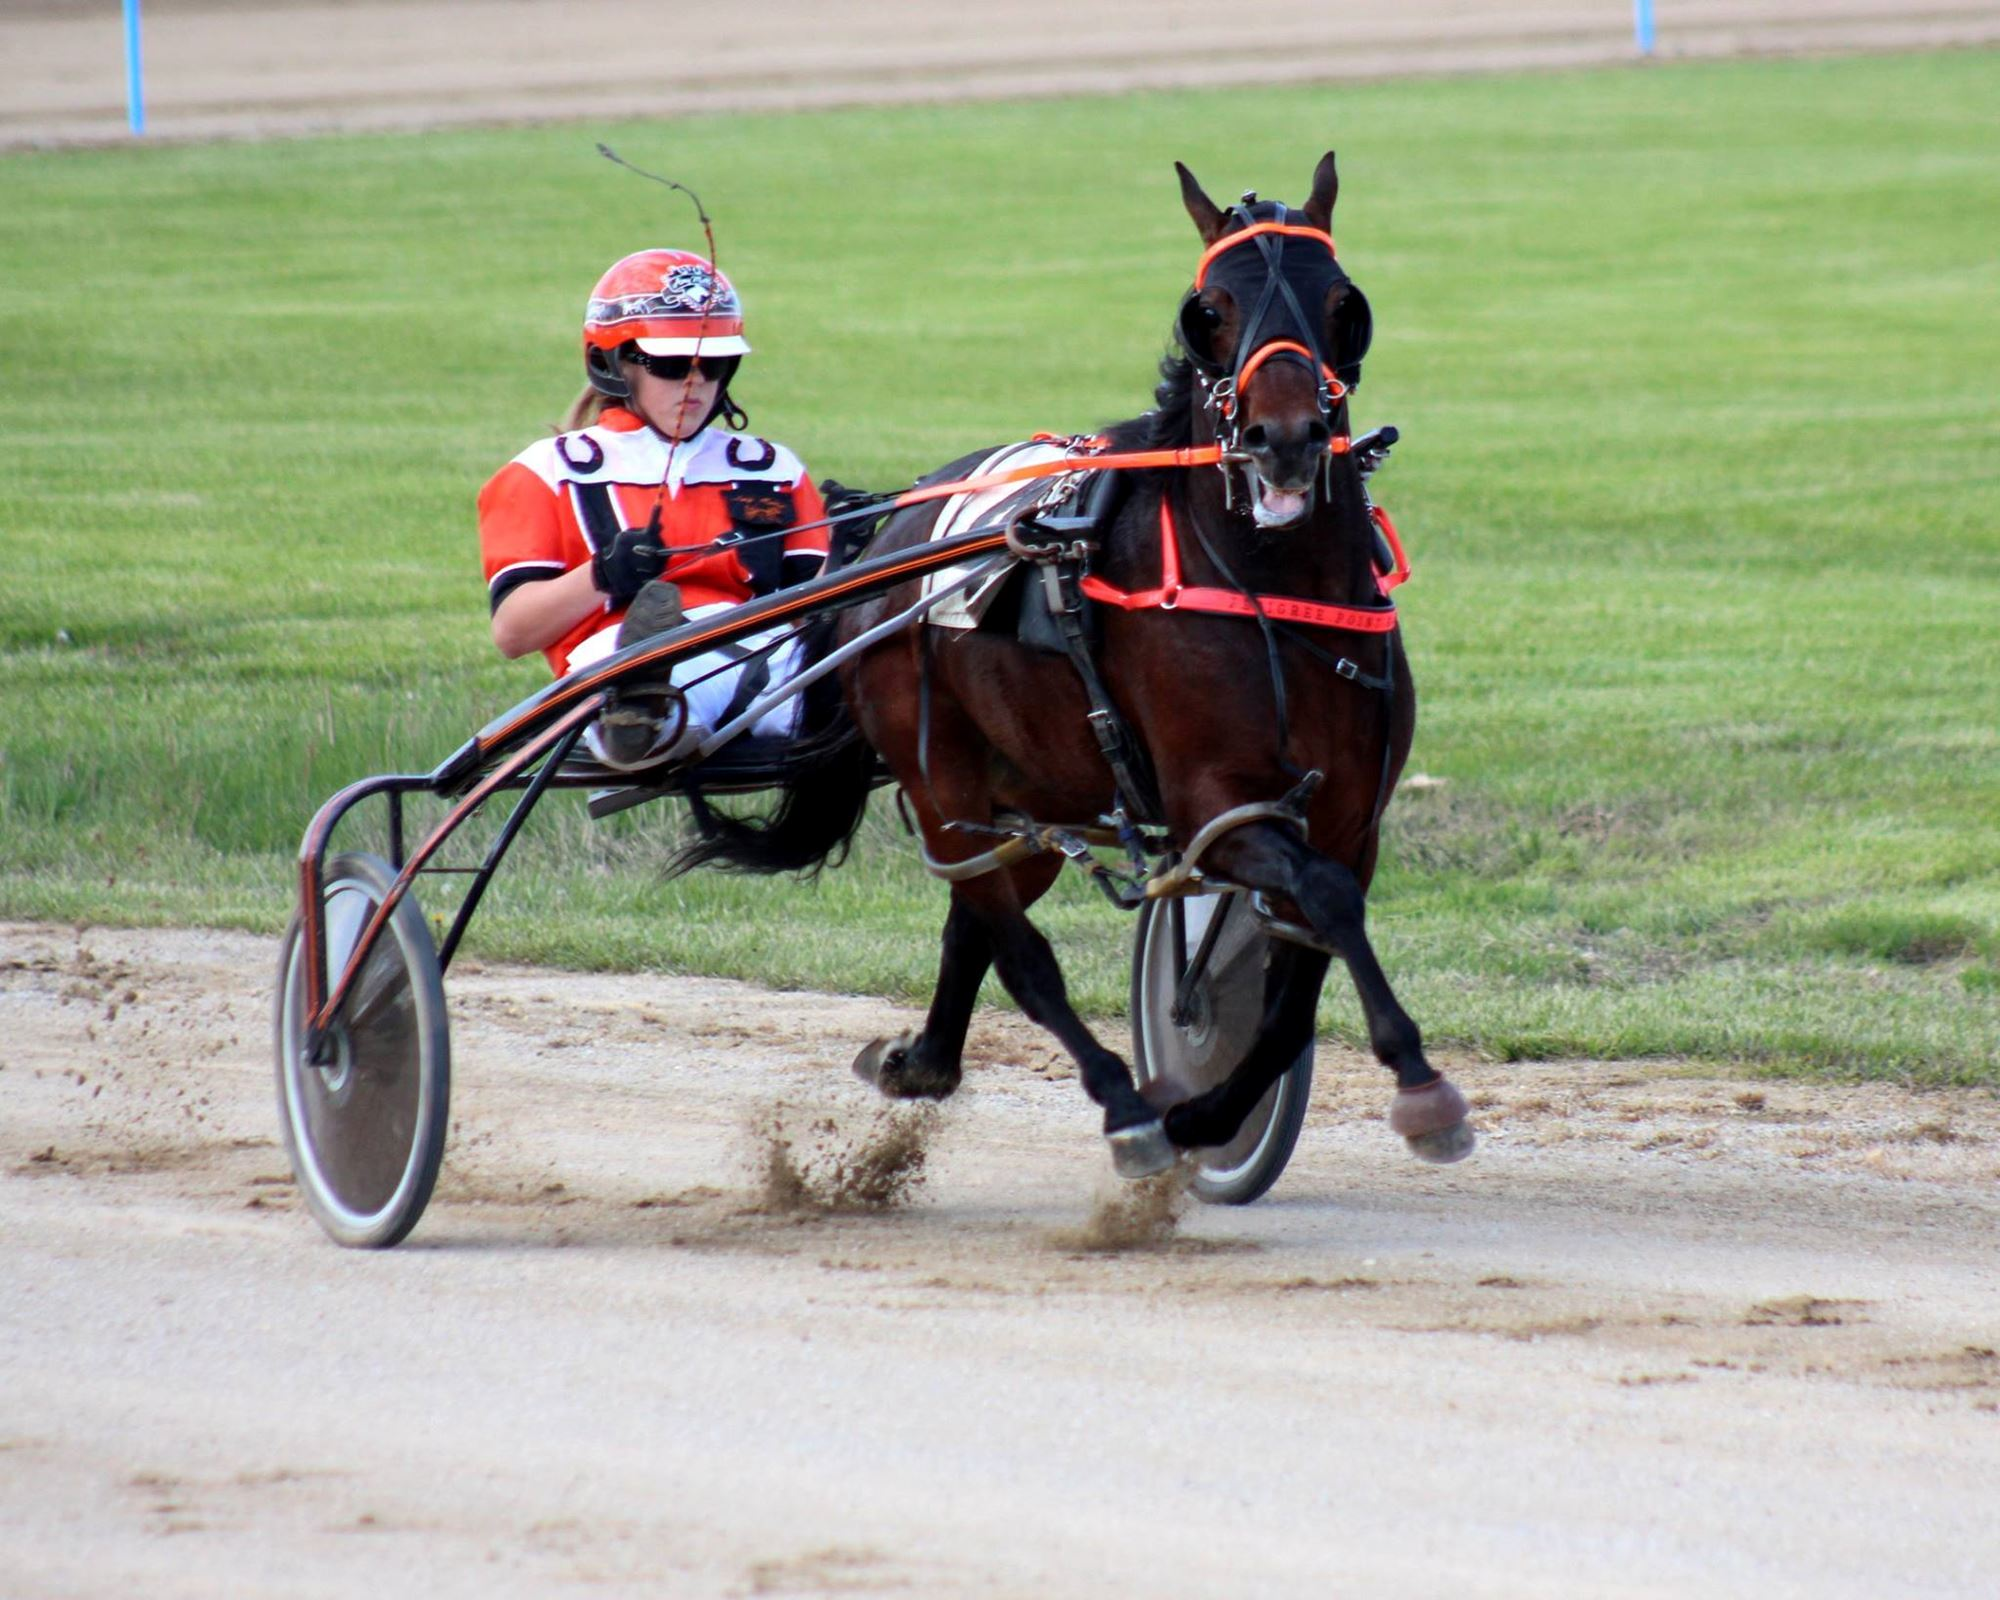 ITPA MIDWESTERN CLASSIC HARNESS RACING